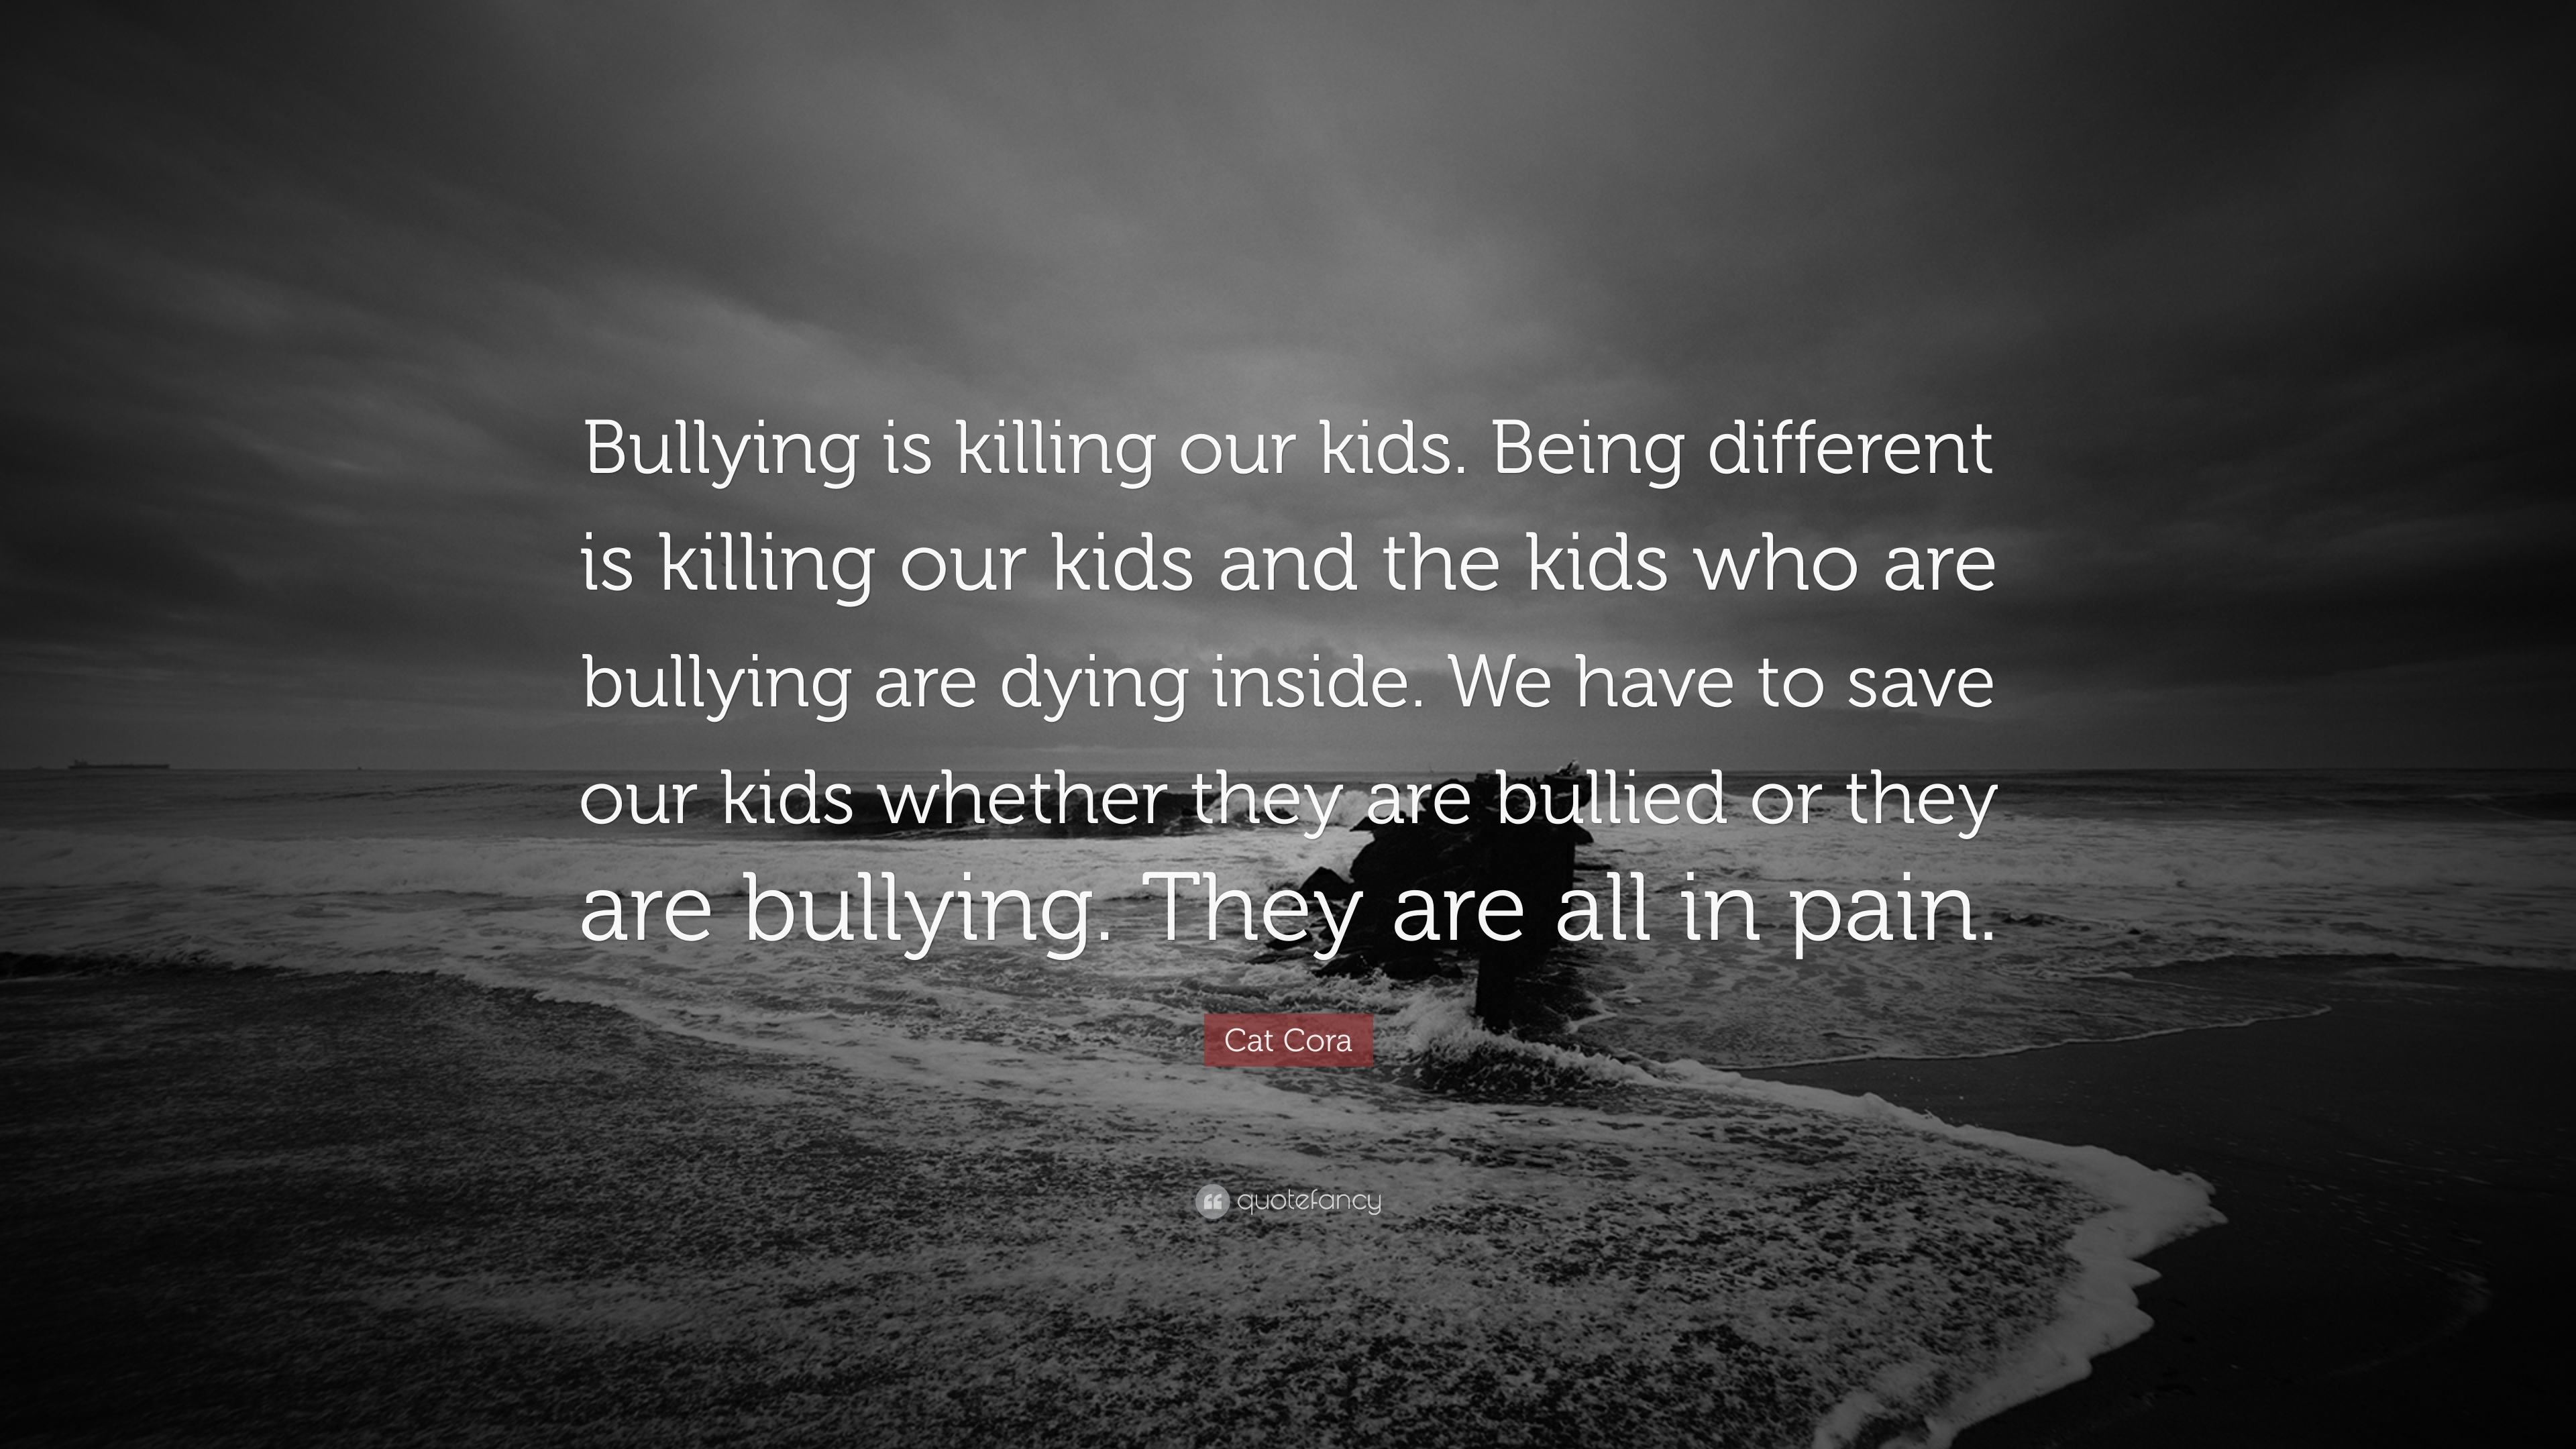 Quotes About Bullying | Cat Cora Quote Bullying Is Killing Our Kids Being Different Is